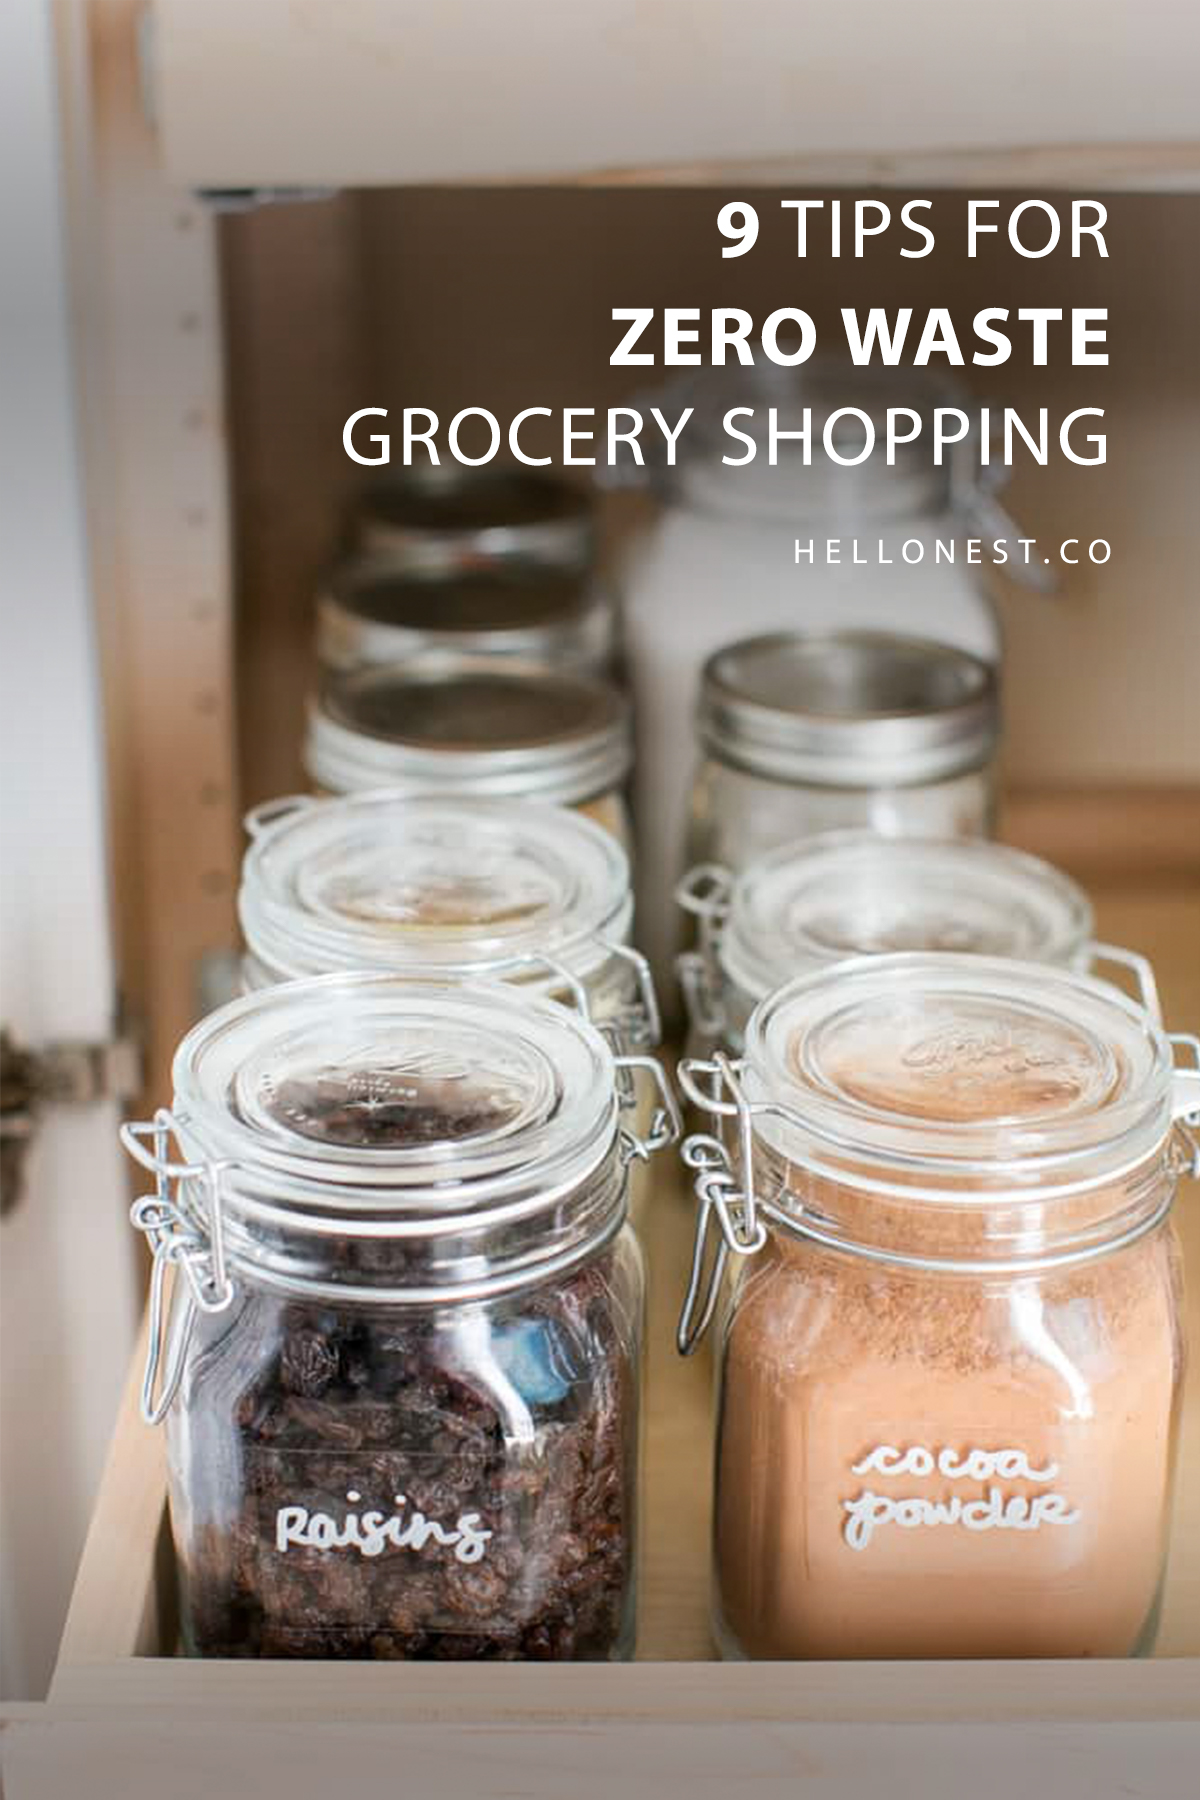 9 Tips for Zero Waste Grocery Shopping